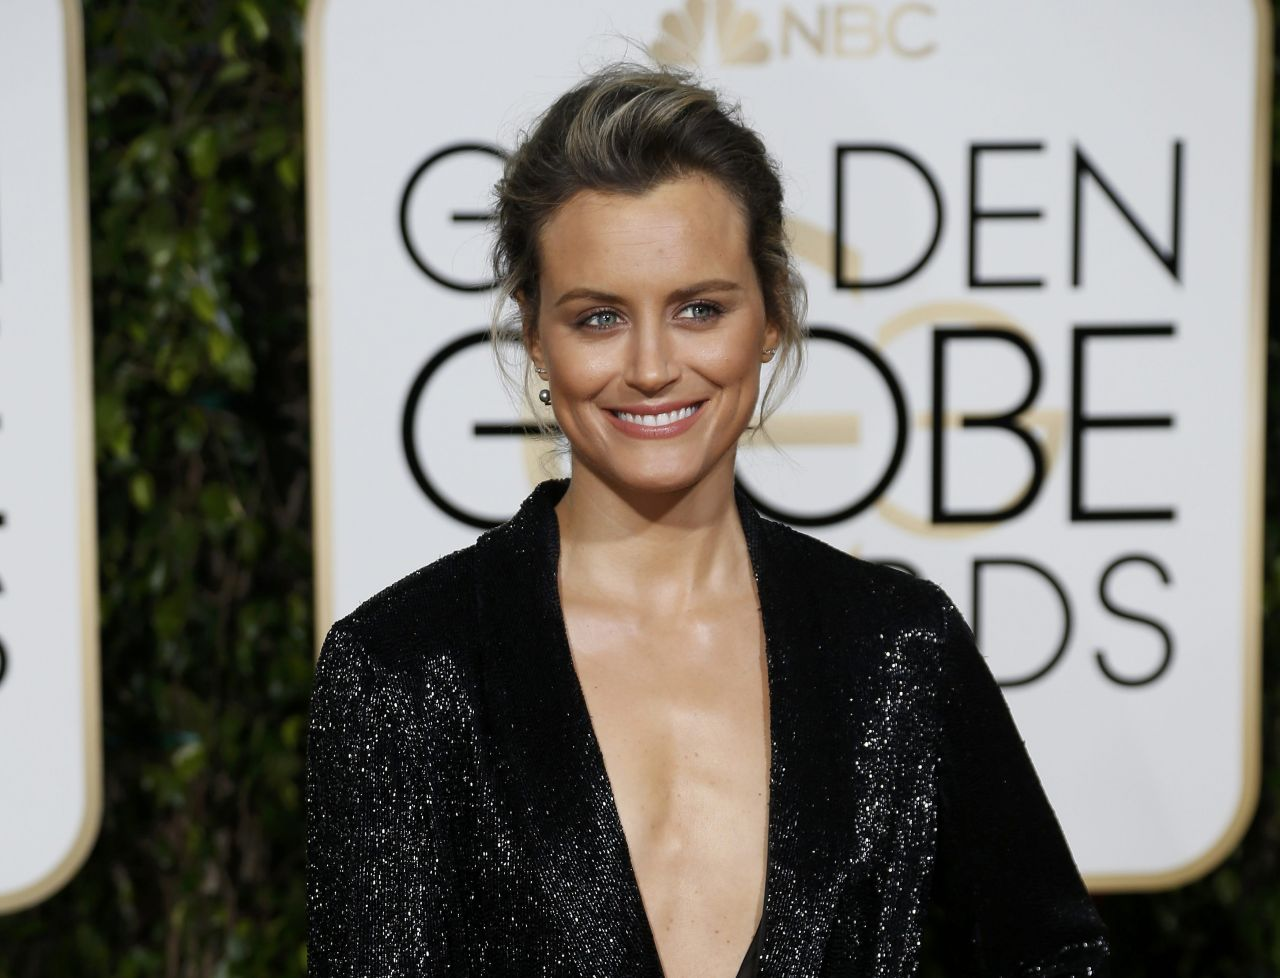 taylor-schilling-2016-golden-globe-awards-in-beverly-hills-2